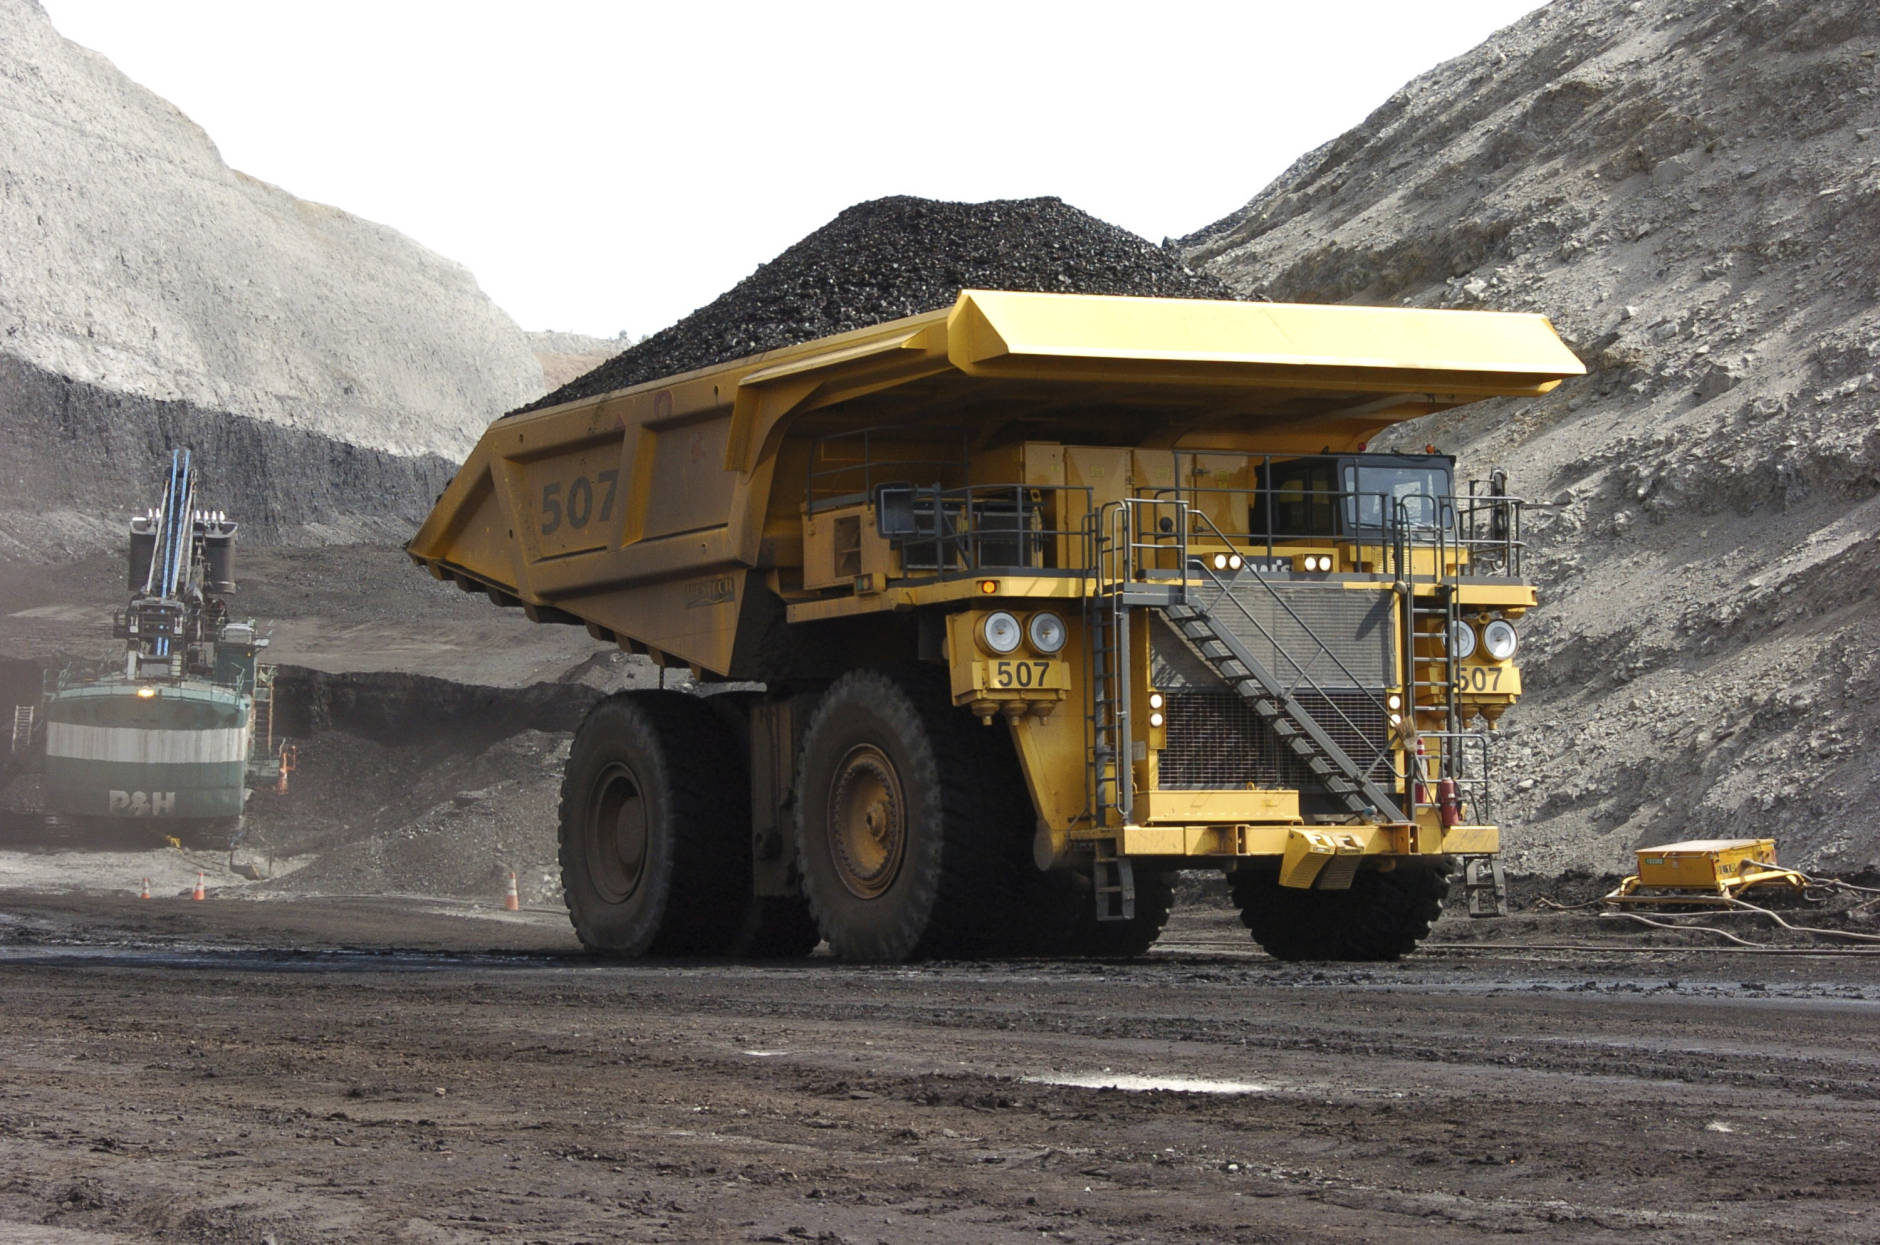 FILE - In this April 4, 2013, file photo, a mining dumper truck hauls coal at Cloud Peak Energy's Spring Creek strip mine near Decker, Mont. For conservatives who have long believed federal managers of America's vast public lands put more value on endangered owls than people and jobs, Donald Trump's election raises hopes for significant increases in oil and gas drilling, mining, grazing, timber harvesting and perhaps even a shift of control to state or local governments. (AP Photo/Matthew Brown, File)